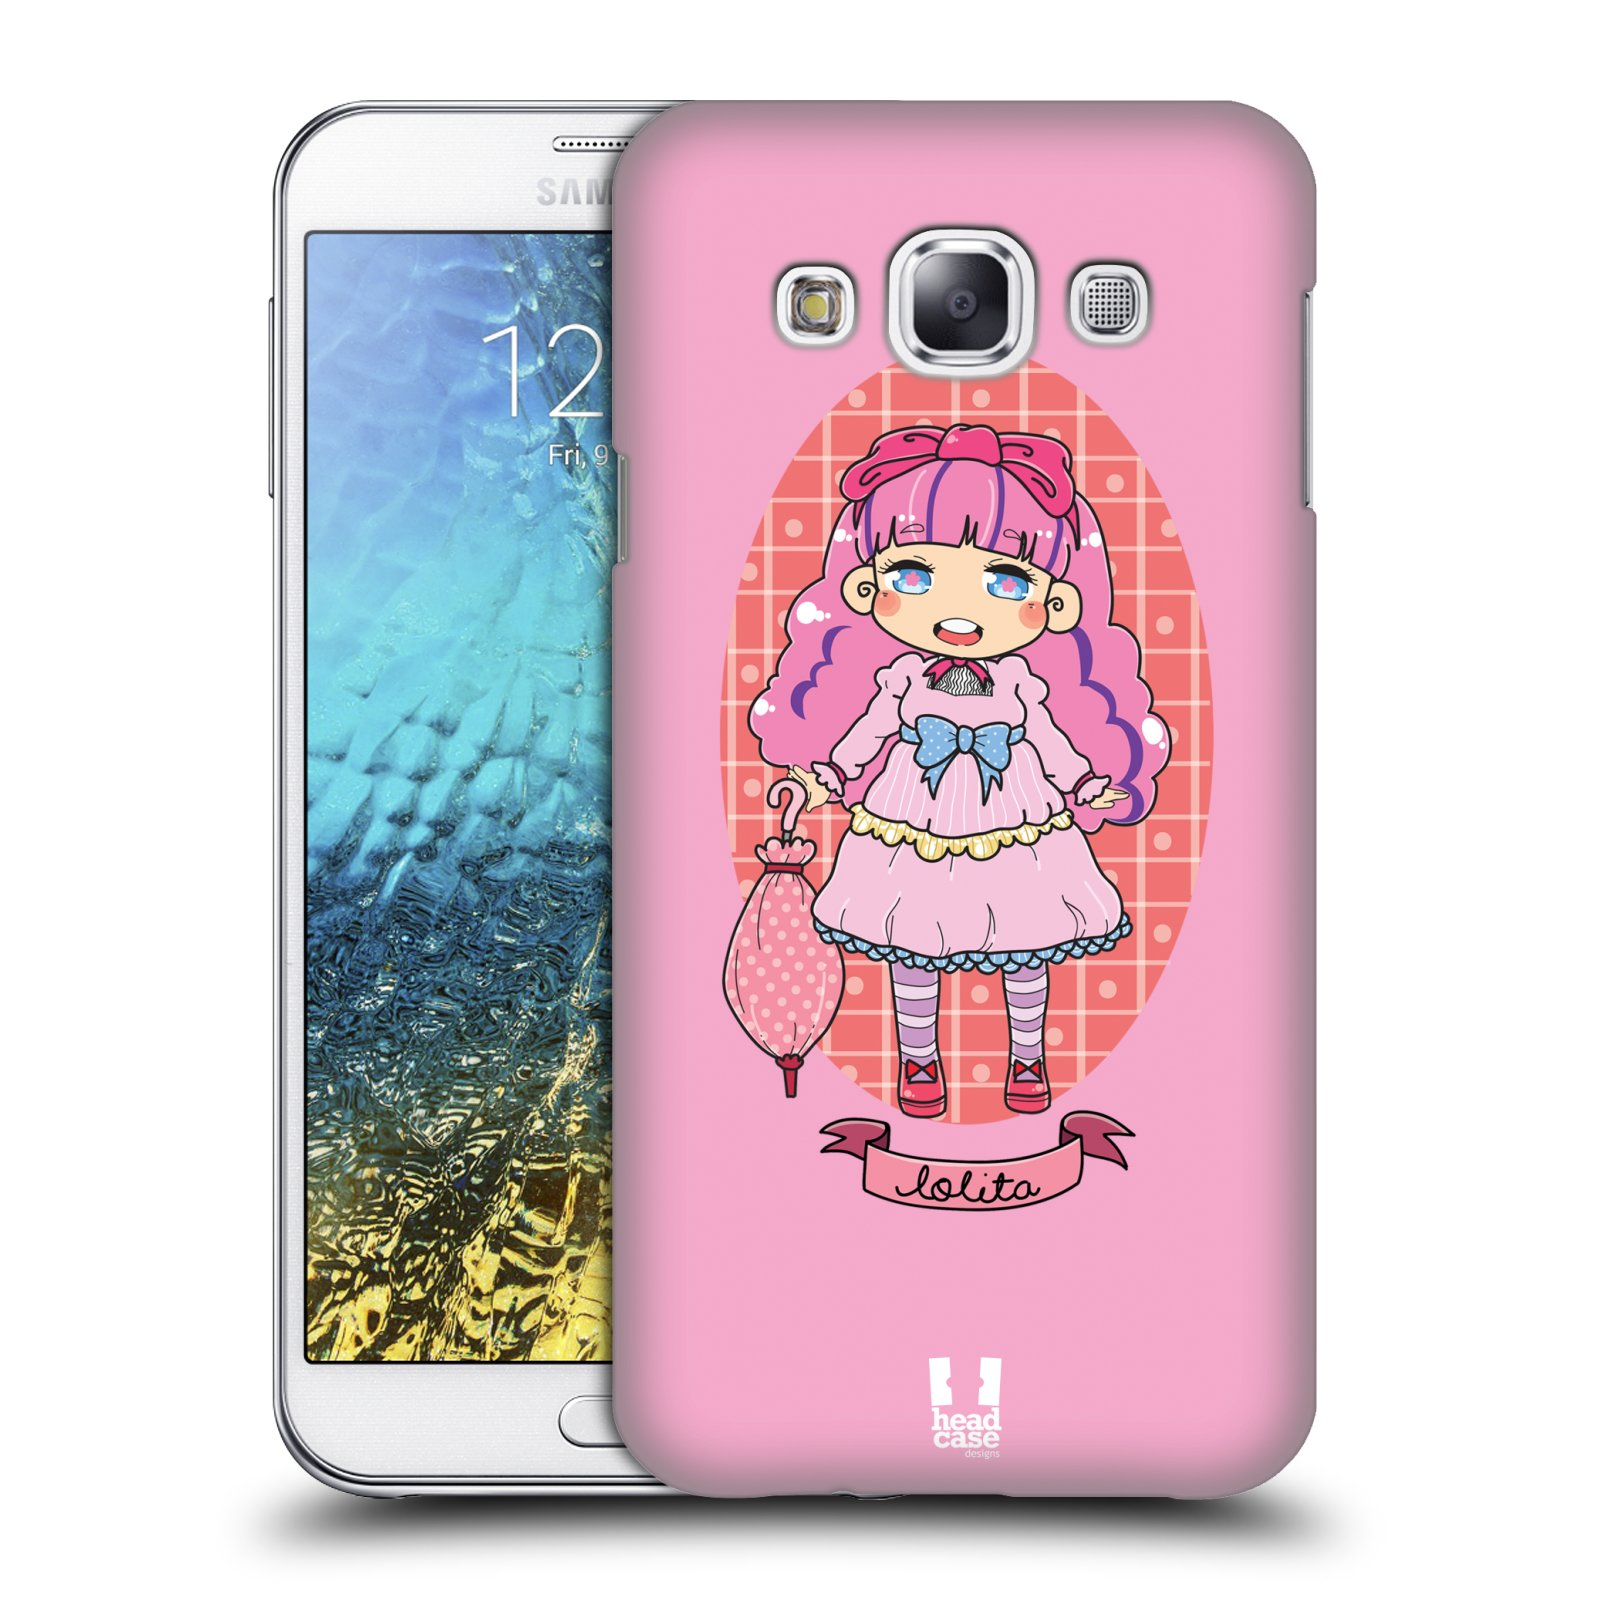 head case designs chibi japanese street fashion schutzh lle f r samsung handys 3 ebay. Black Bedroom Furniture Sets. Home Design Ideas